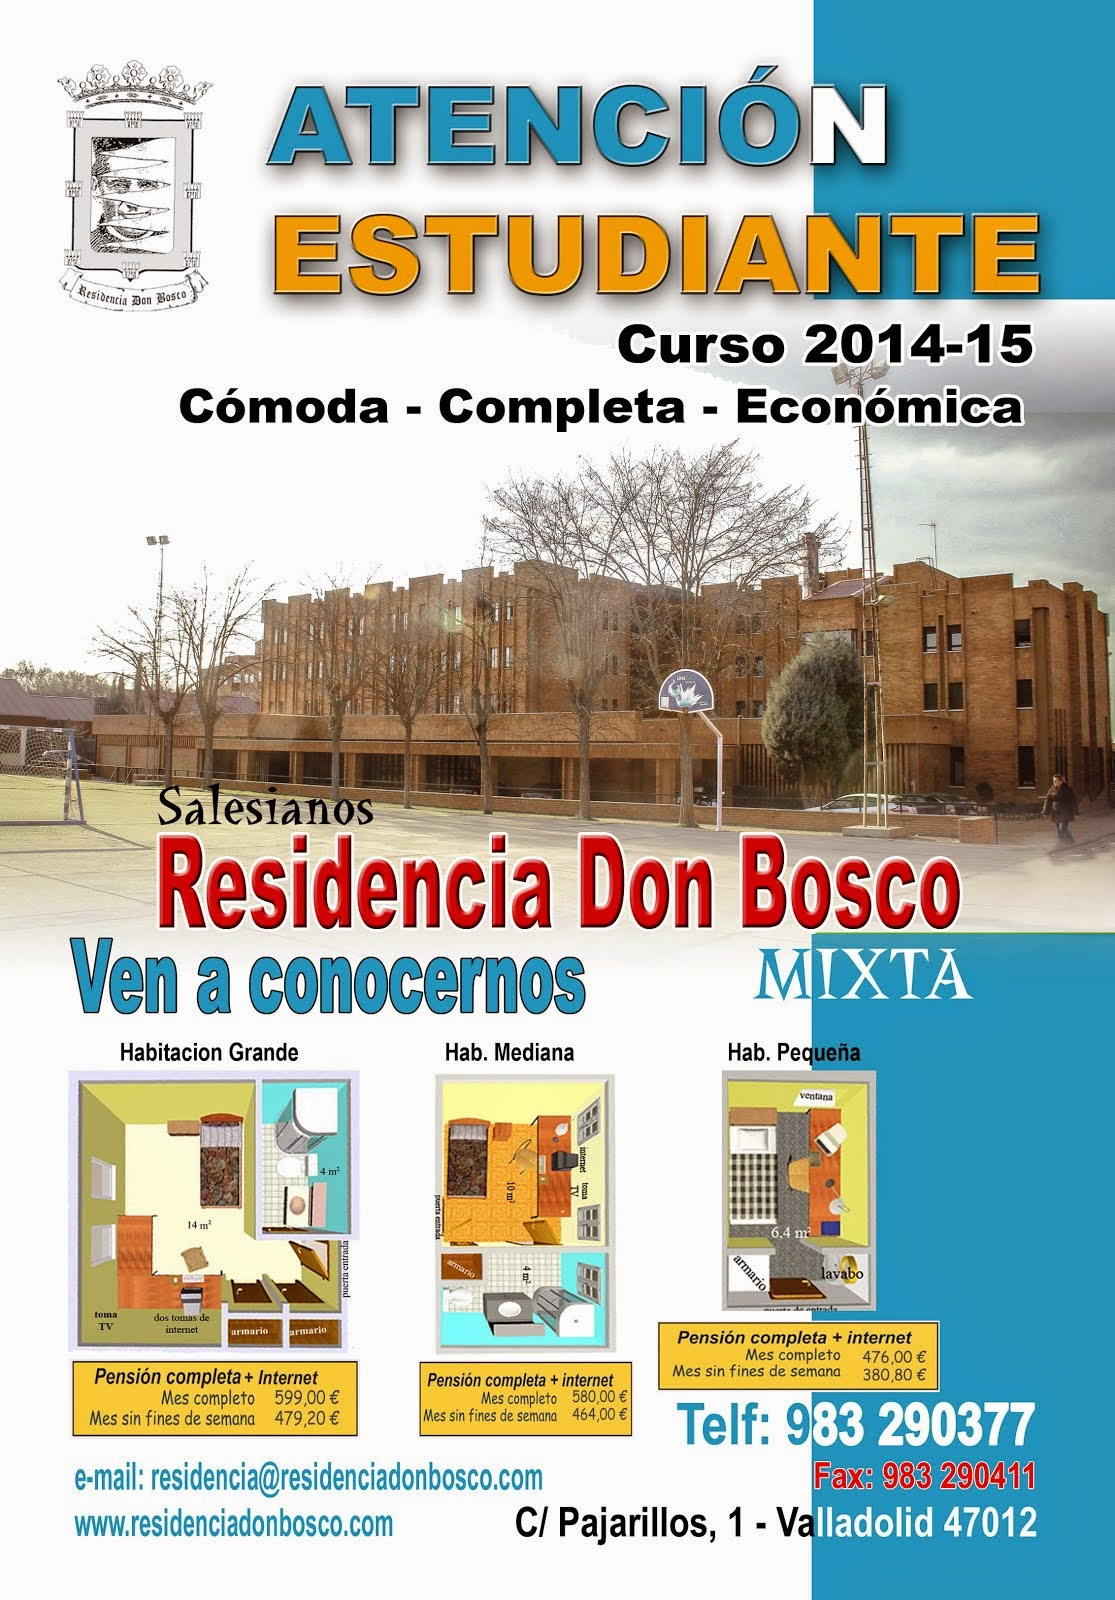 RESIDENCIA DON BOSCO. VA